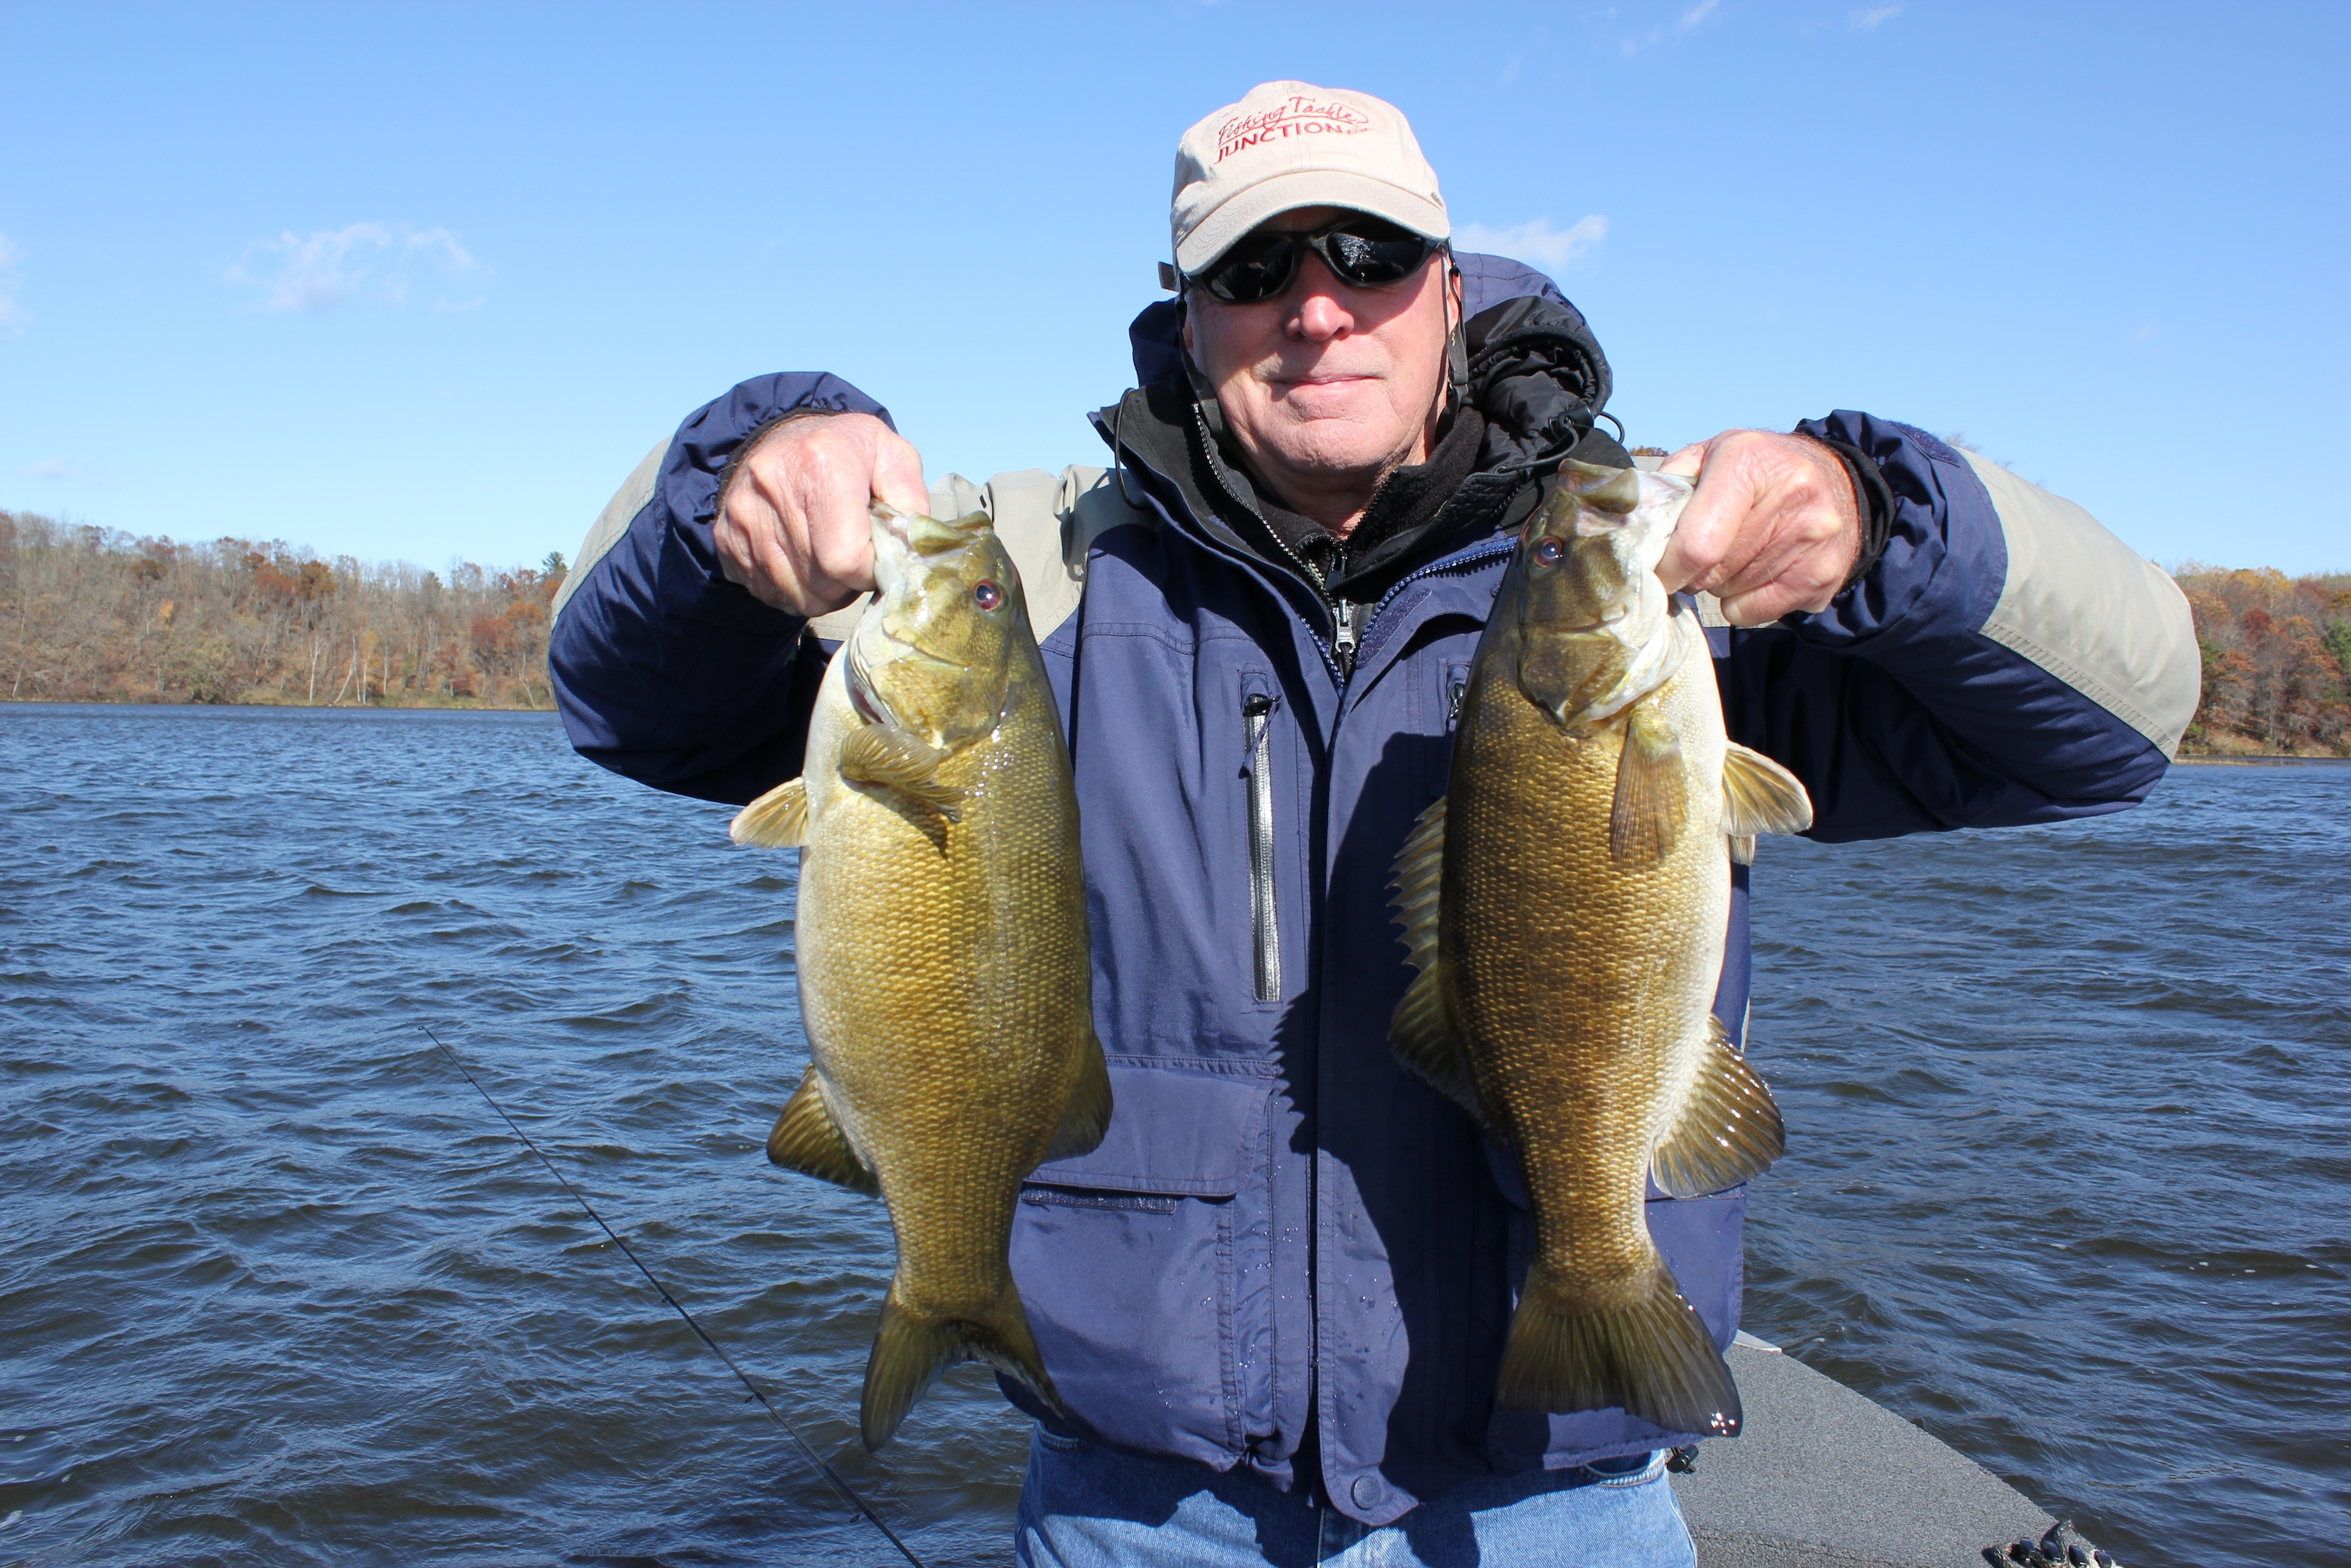 David Gray, owner of Carbon X Rods, came to Lake Country, Minnesota last week. And bassed out.